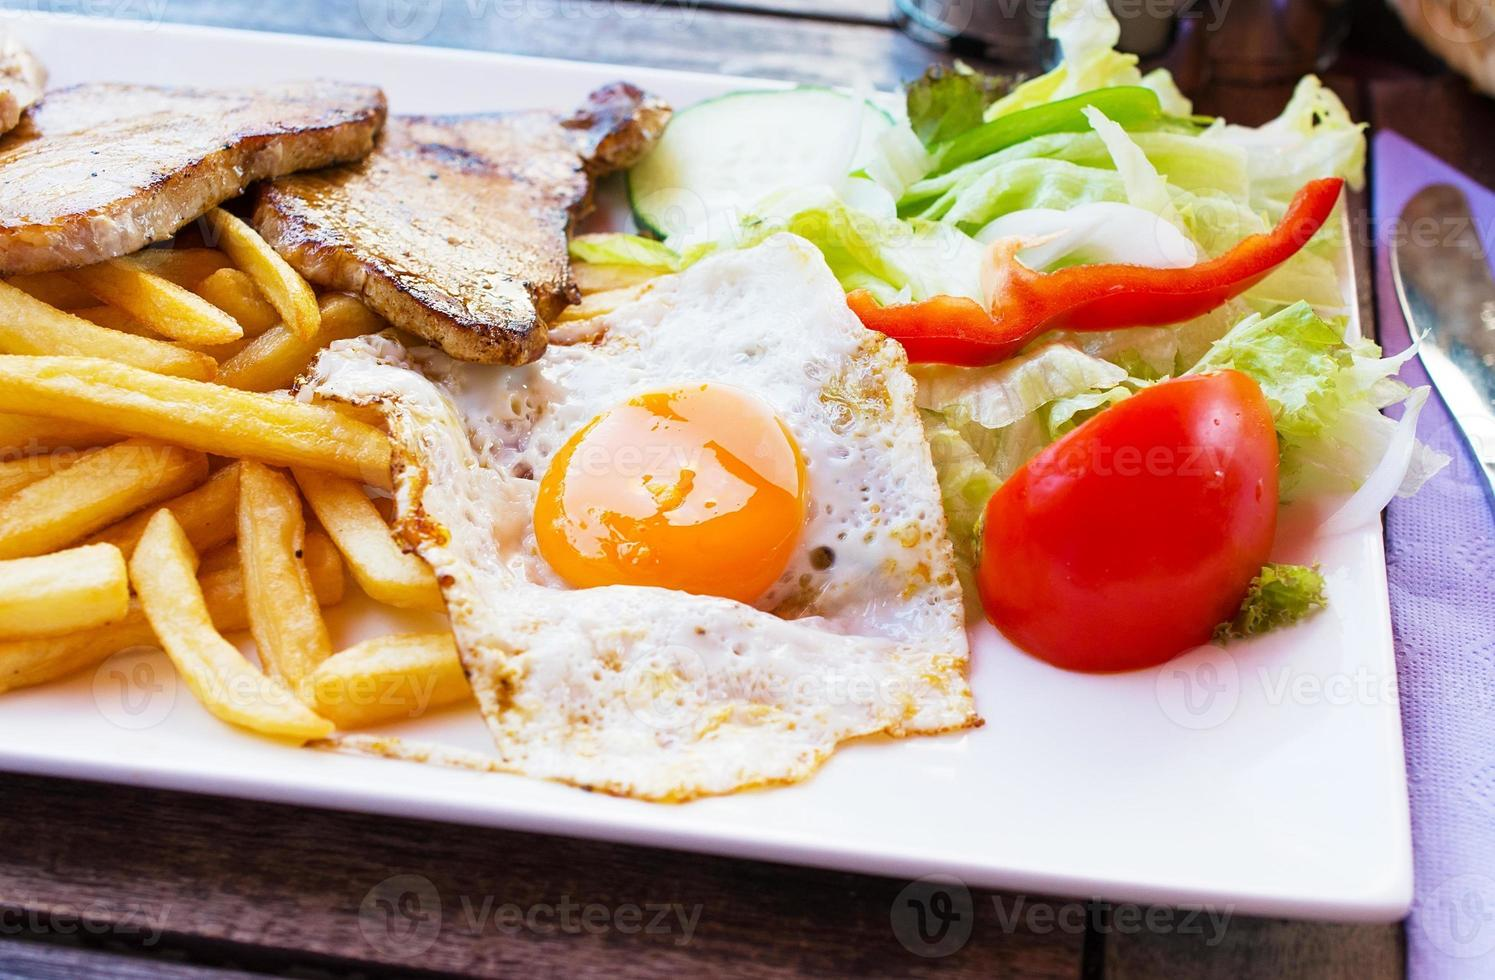 Fried egg with potato fries, grilled steak. photo